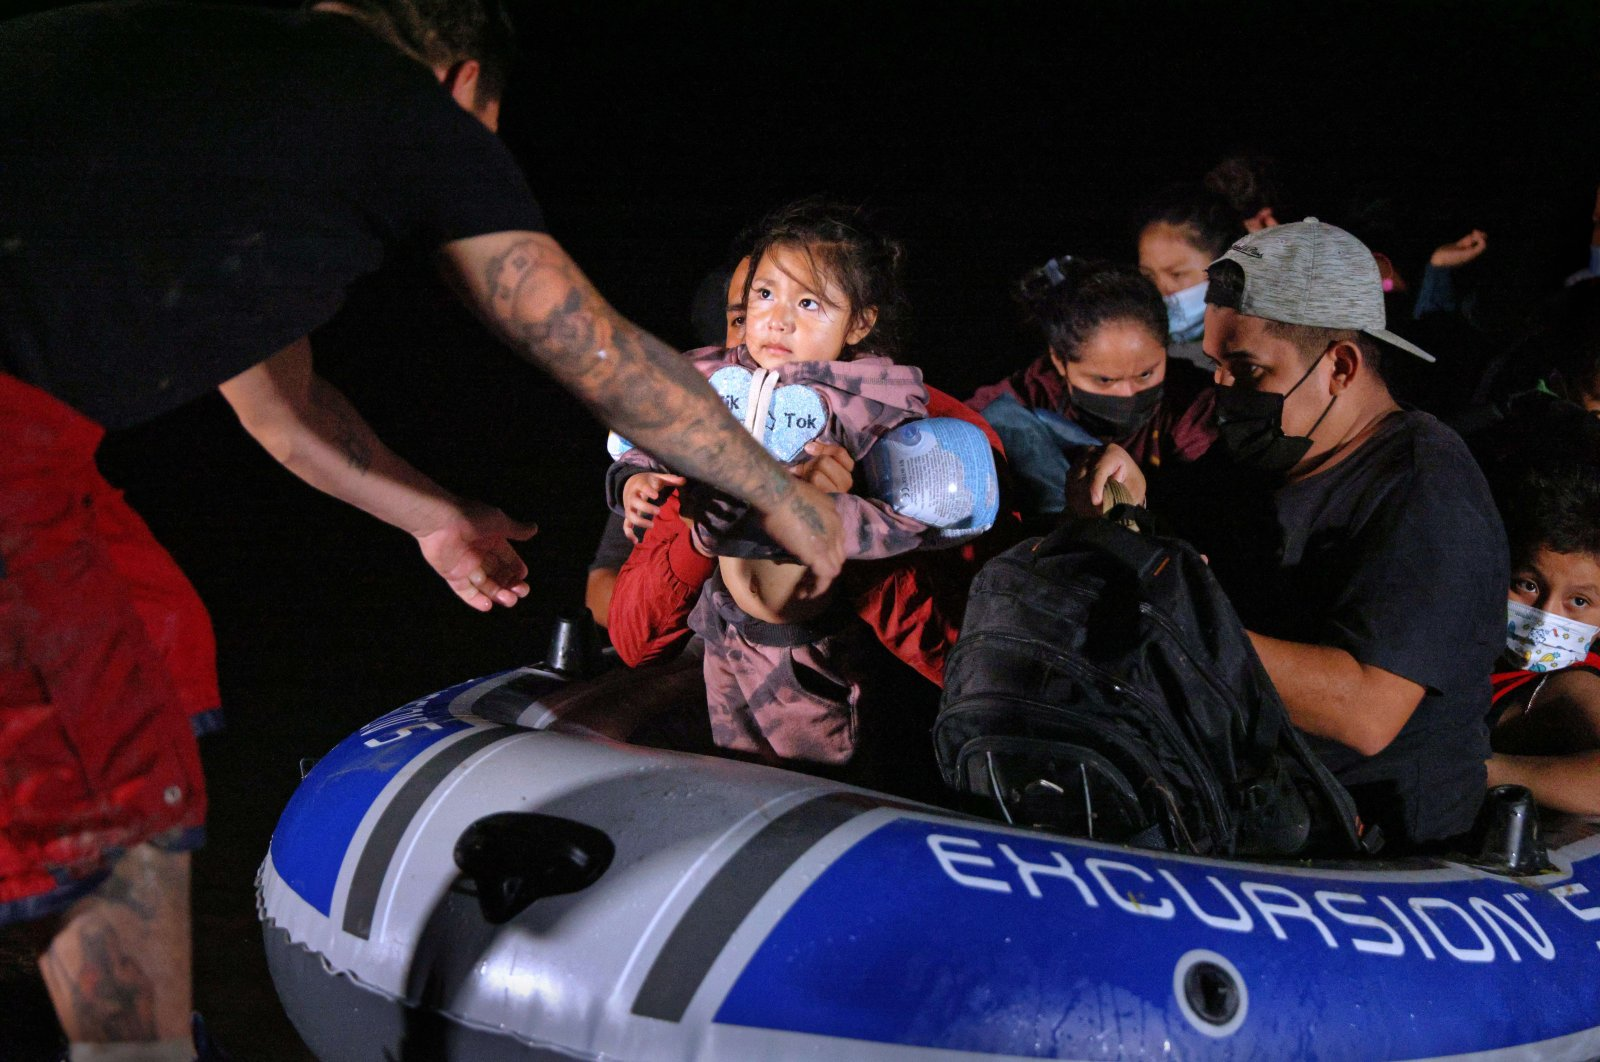 An immigrant child glances towards a human trafficker while being smuggled into the United States from Mexico in Roma, Texas, April 15, 2021. (AFP Photo)